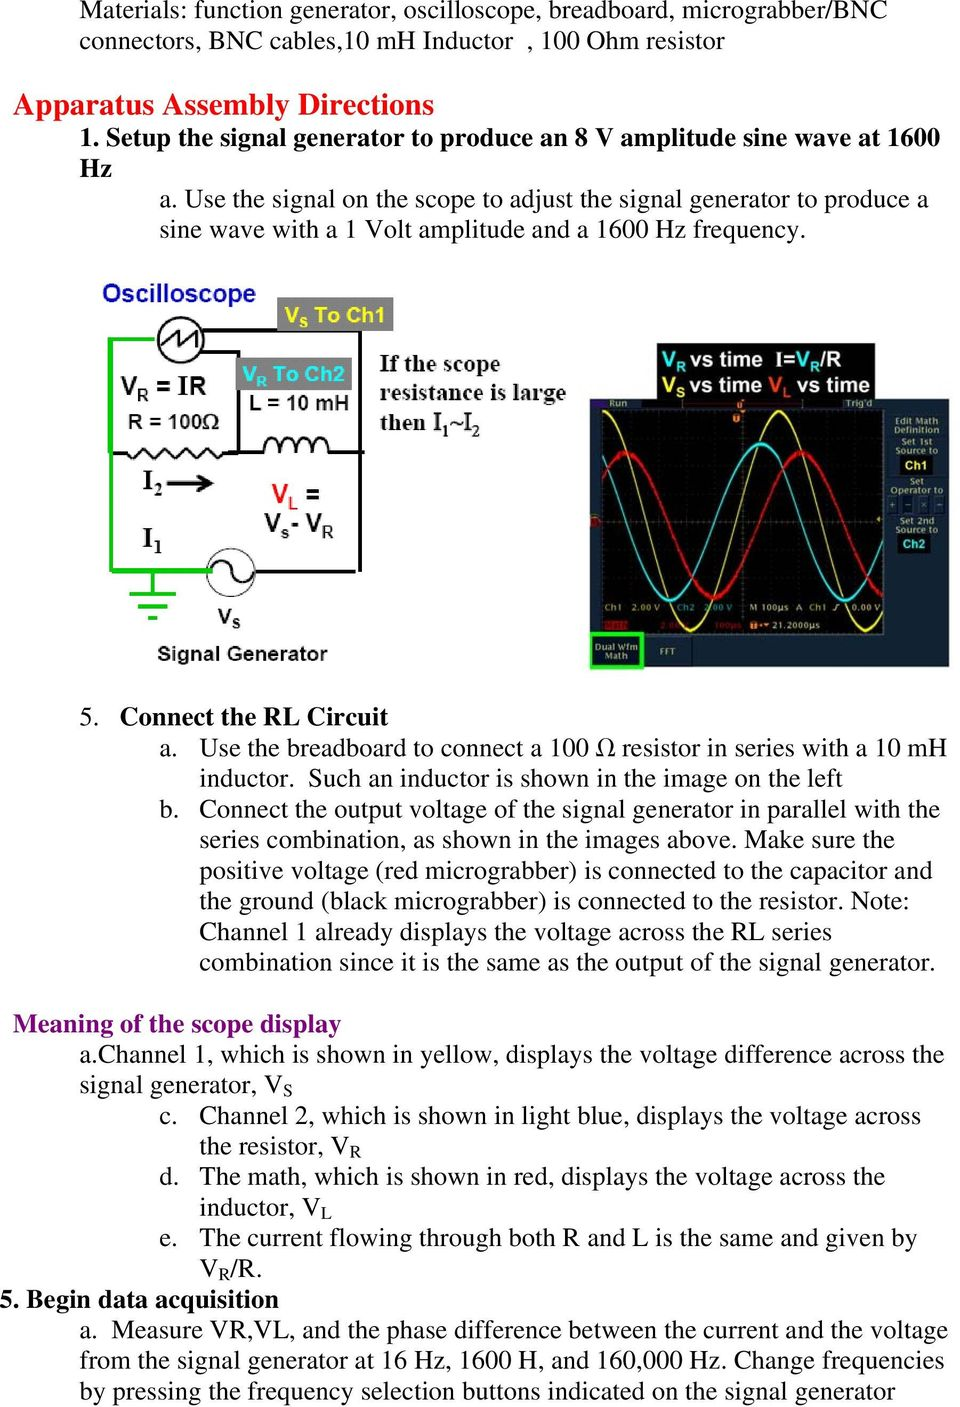 Physics 15b Lab 4 Responses To Time Dependent Voltages Pdf Sine Wave Generator Circuit Diagram Use The Signal On Scope Adjust Produce A